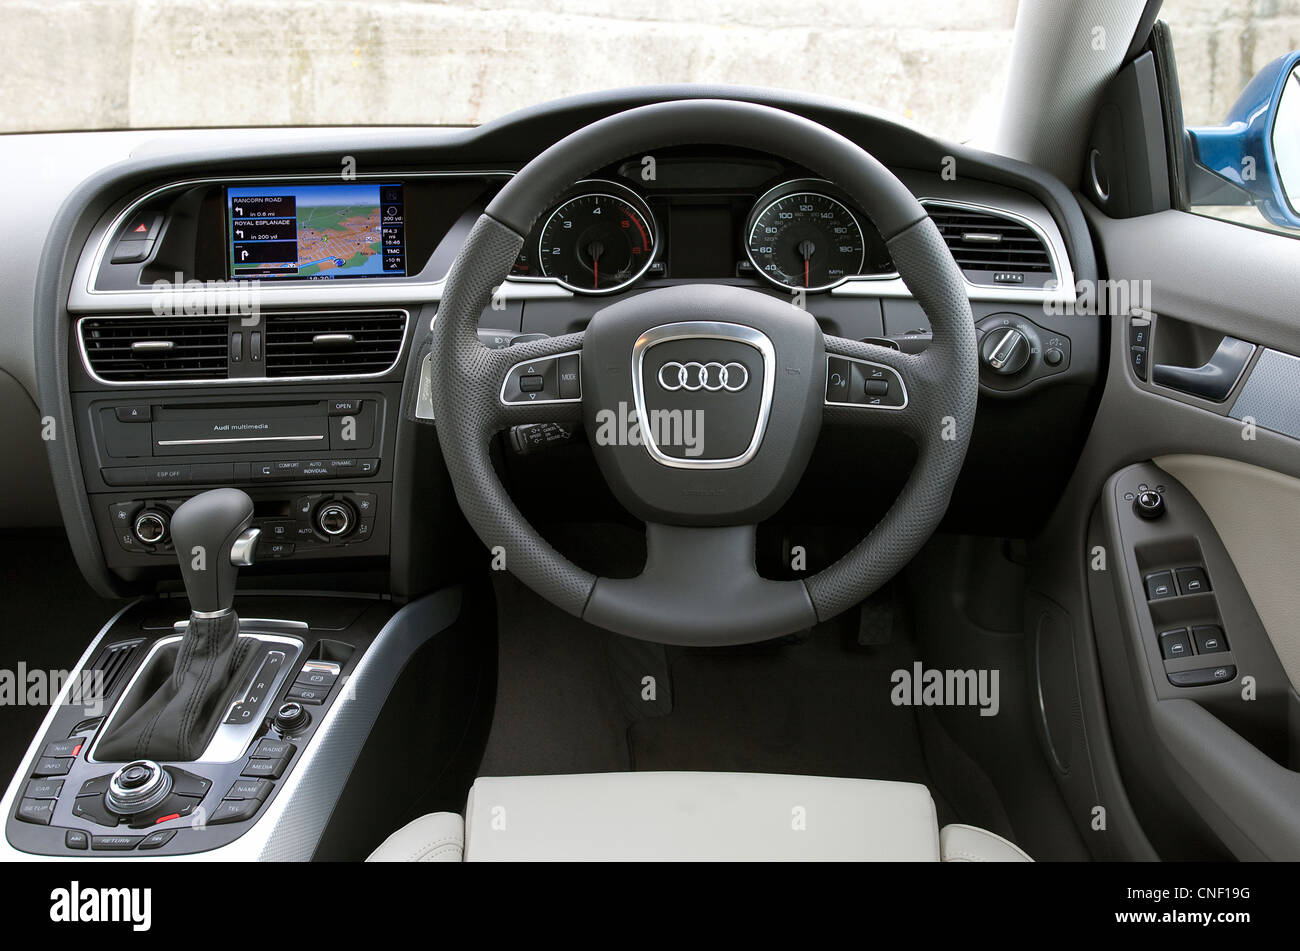 Audi A5 Sportback interior from the drivers perspective - Stock Image